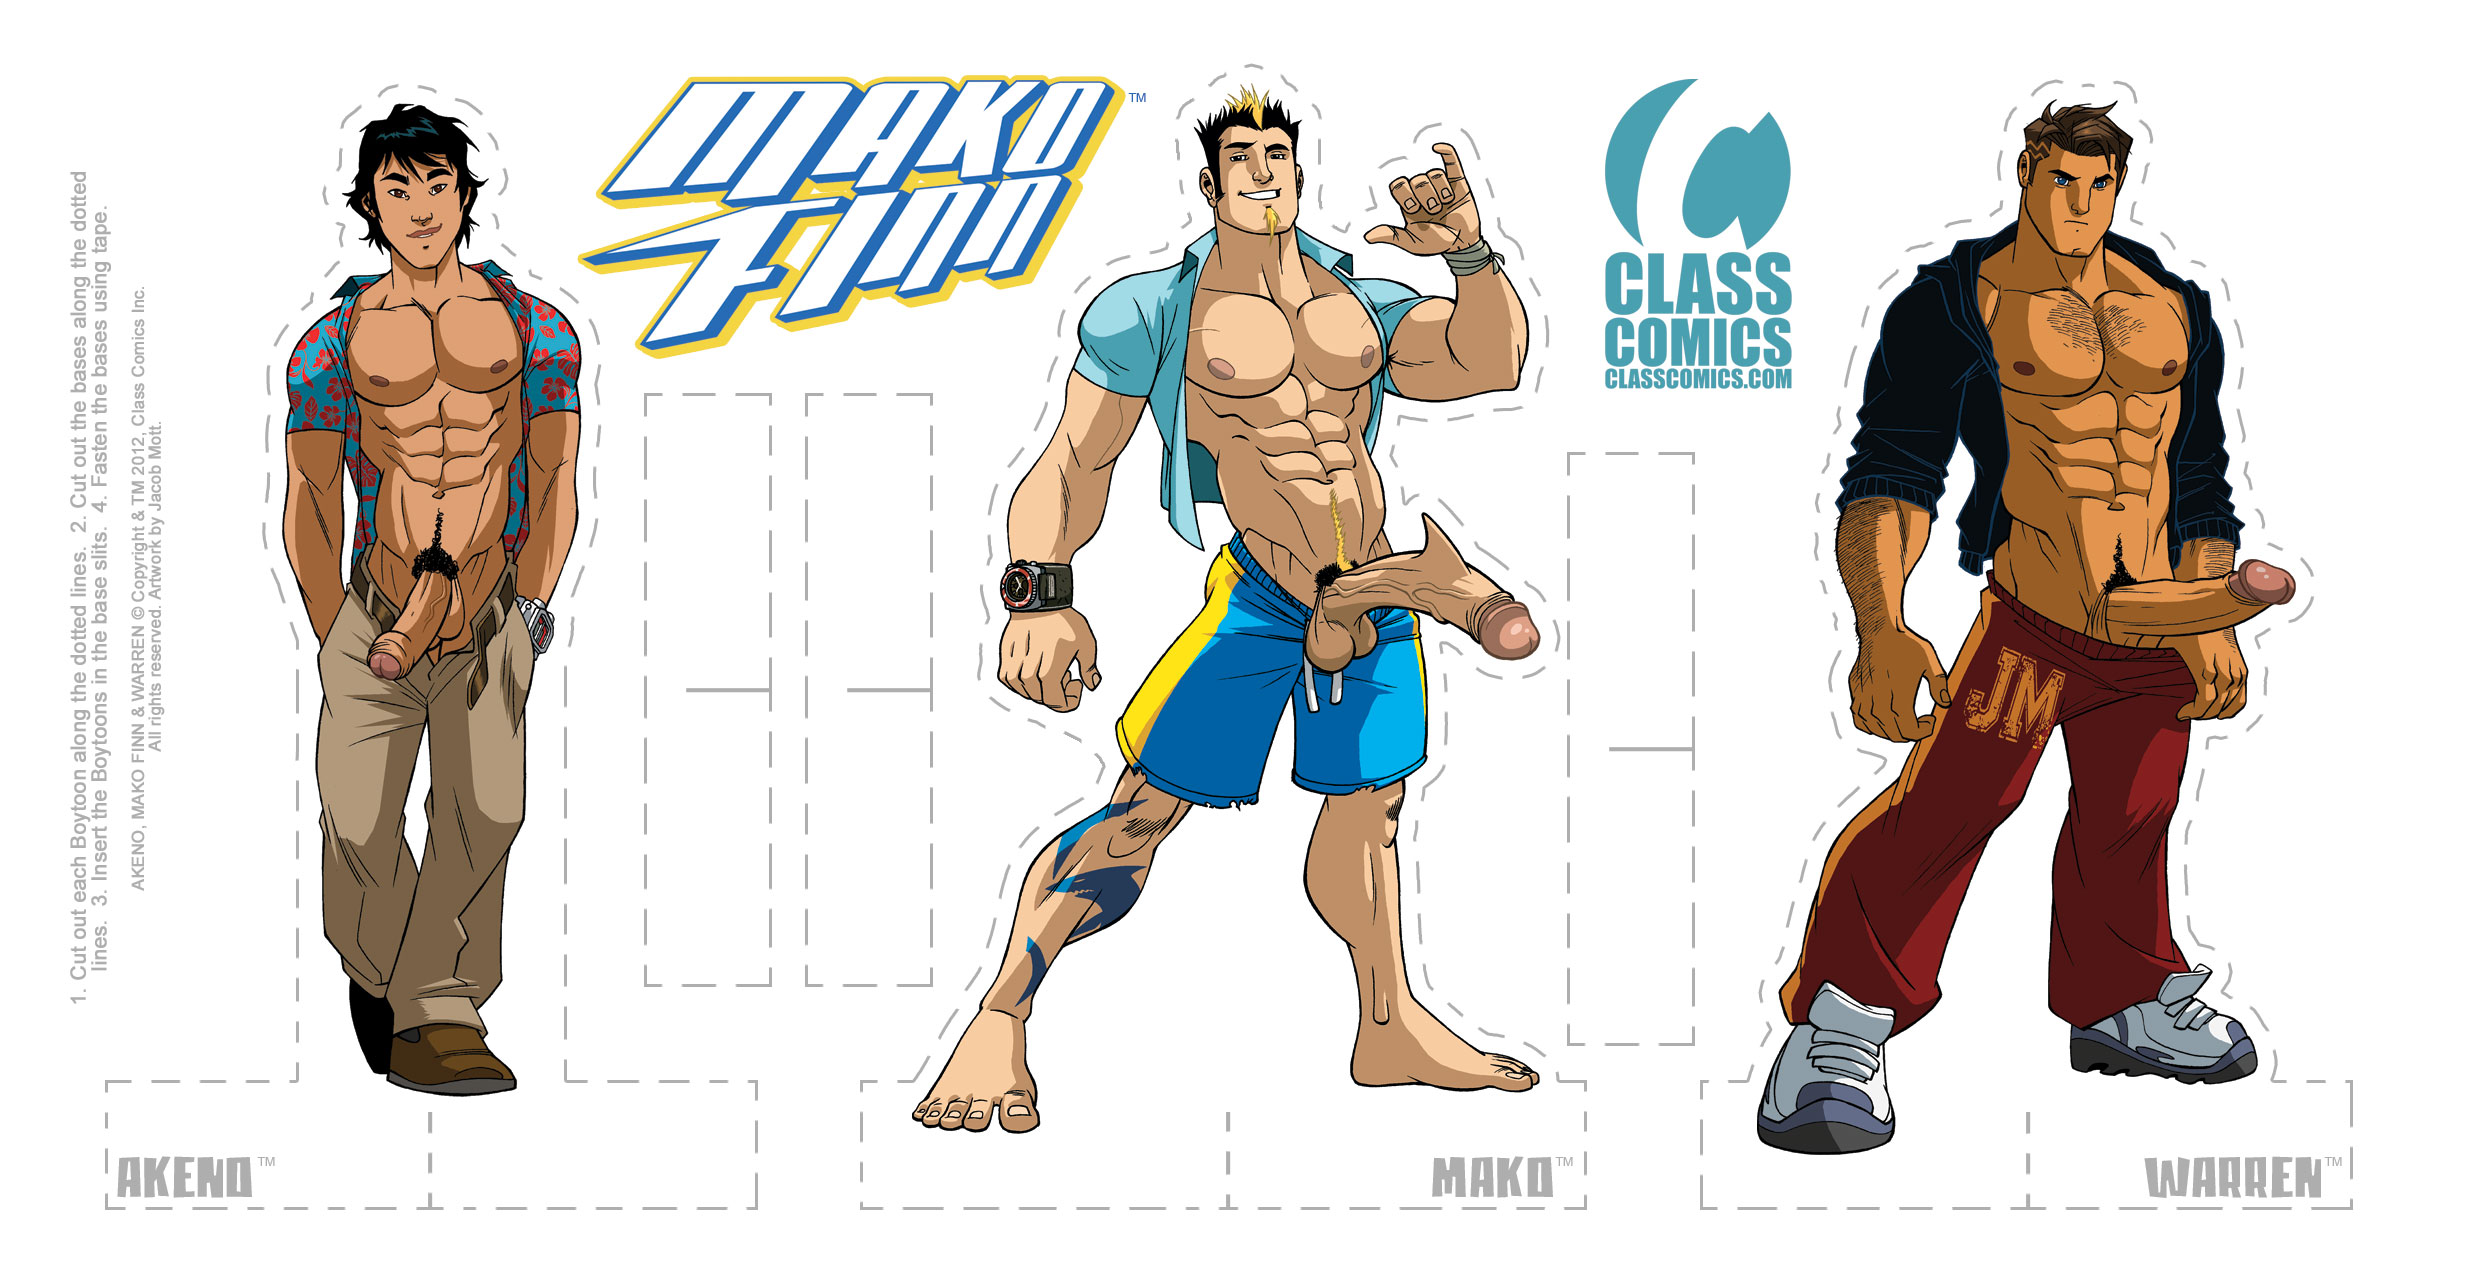 MAKO FINN #1 - Paper Standees PACK - Art by Jacob Mott.